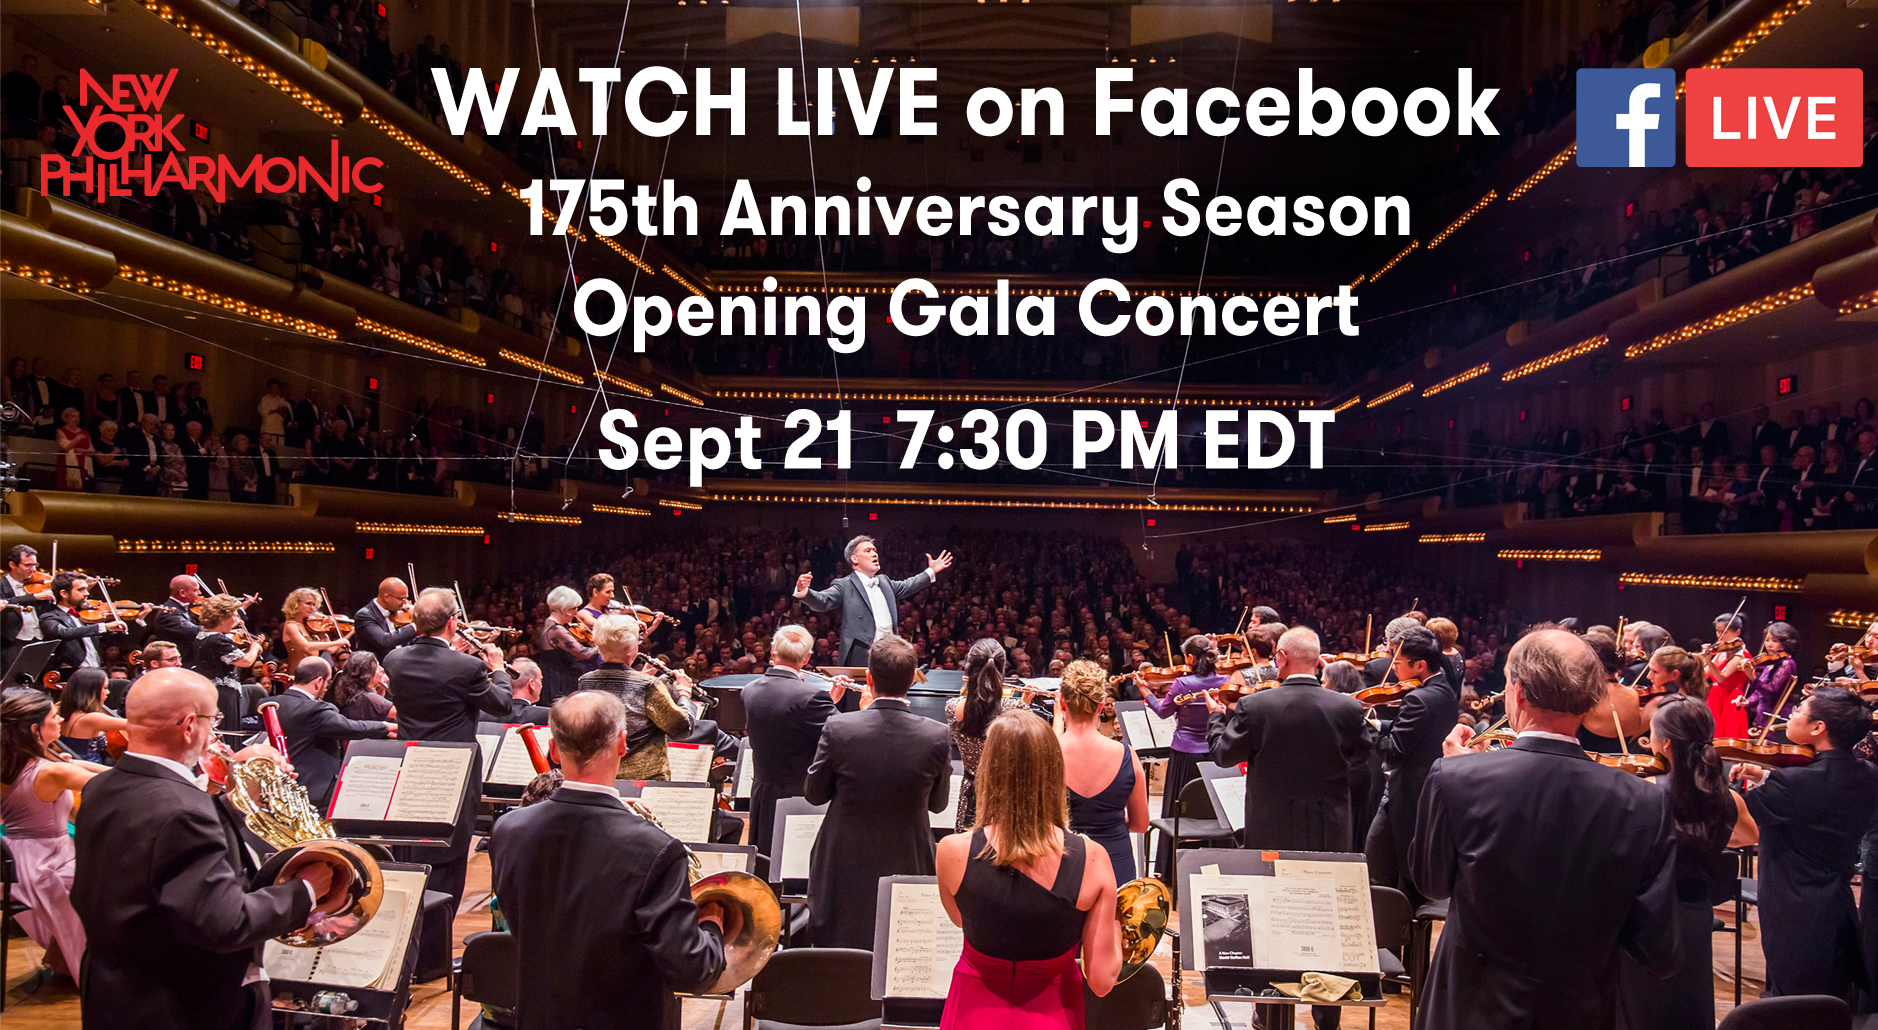 NY Philharmonic The New World Initiative Facebook Live Dvorak